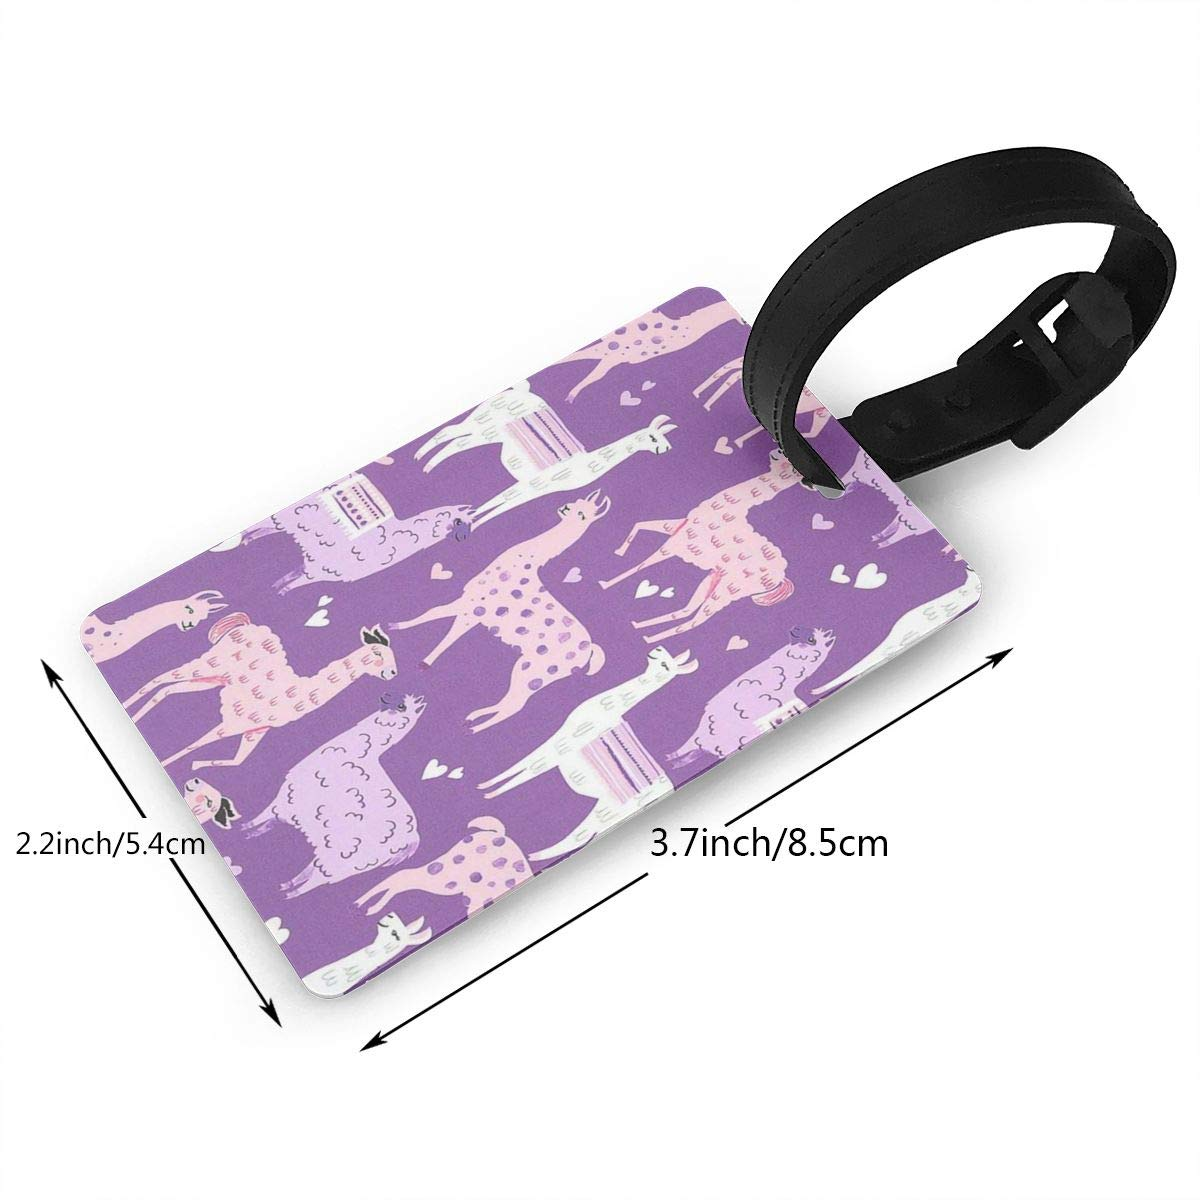 Cute Llama Cruise Luggage Tag For Travel Tags Accessories 2 Pack Luggage Tags